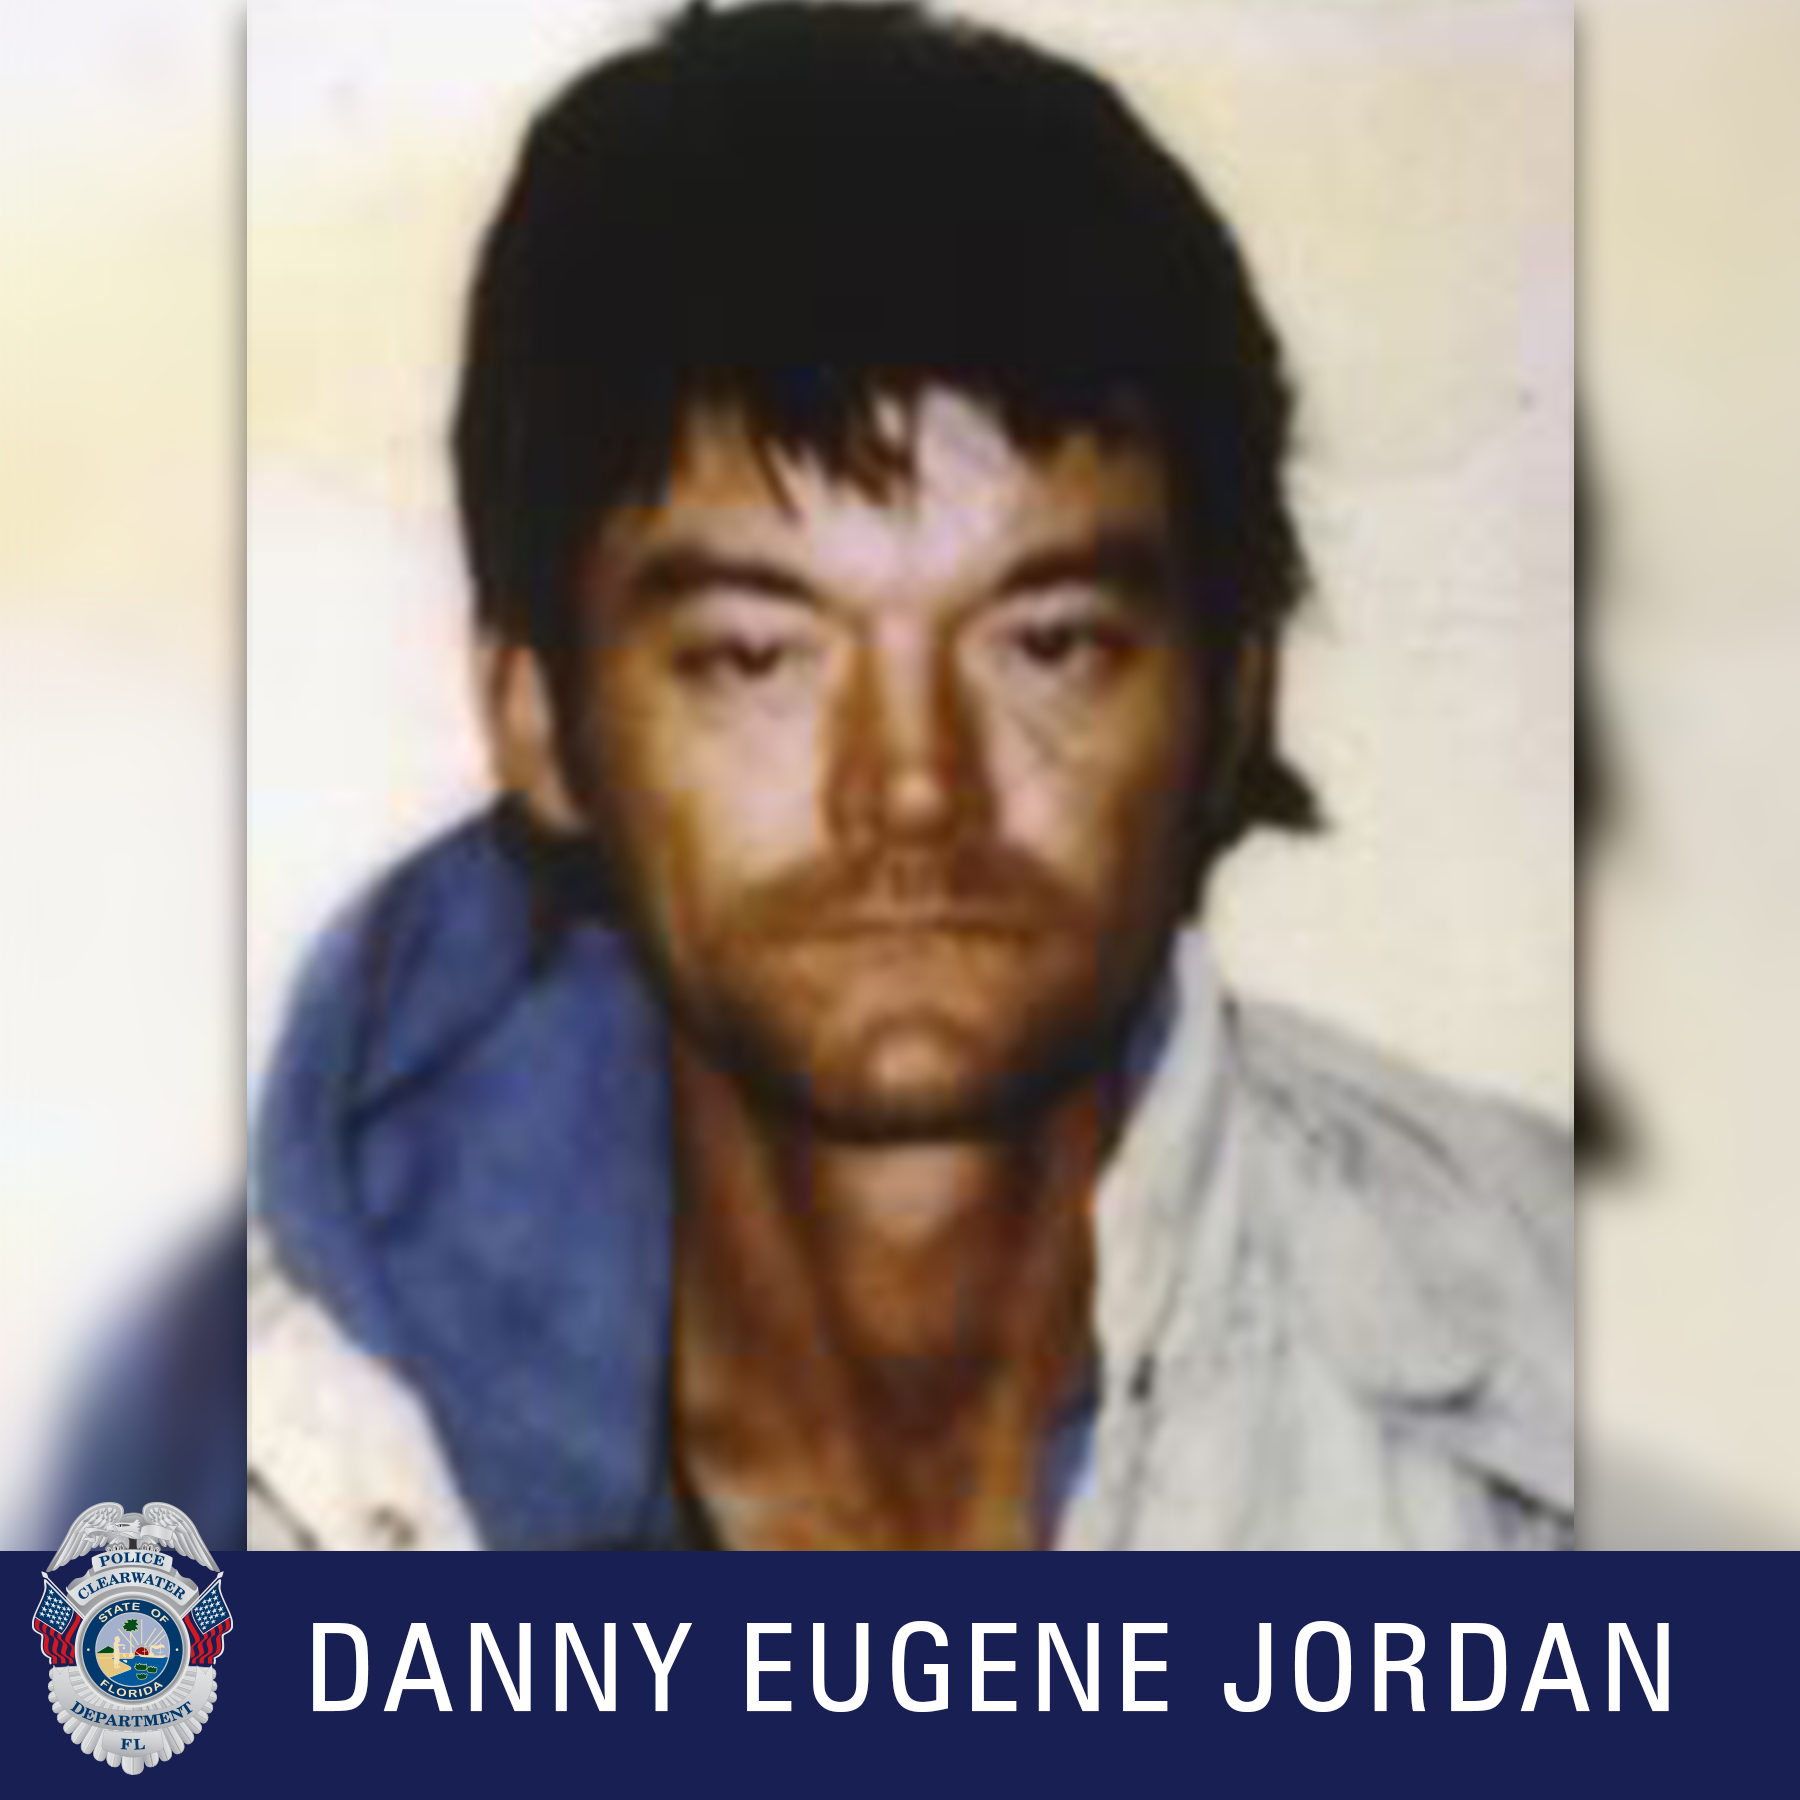 Danny Eugene Jordan, Clearwater Police Department shield, Male with black hair wearing a faded jean shirt